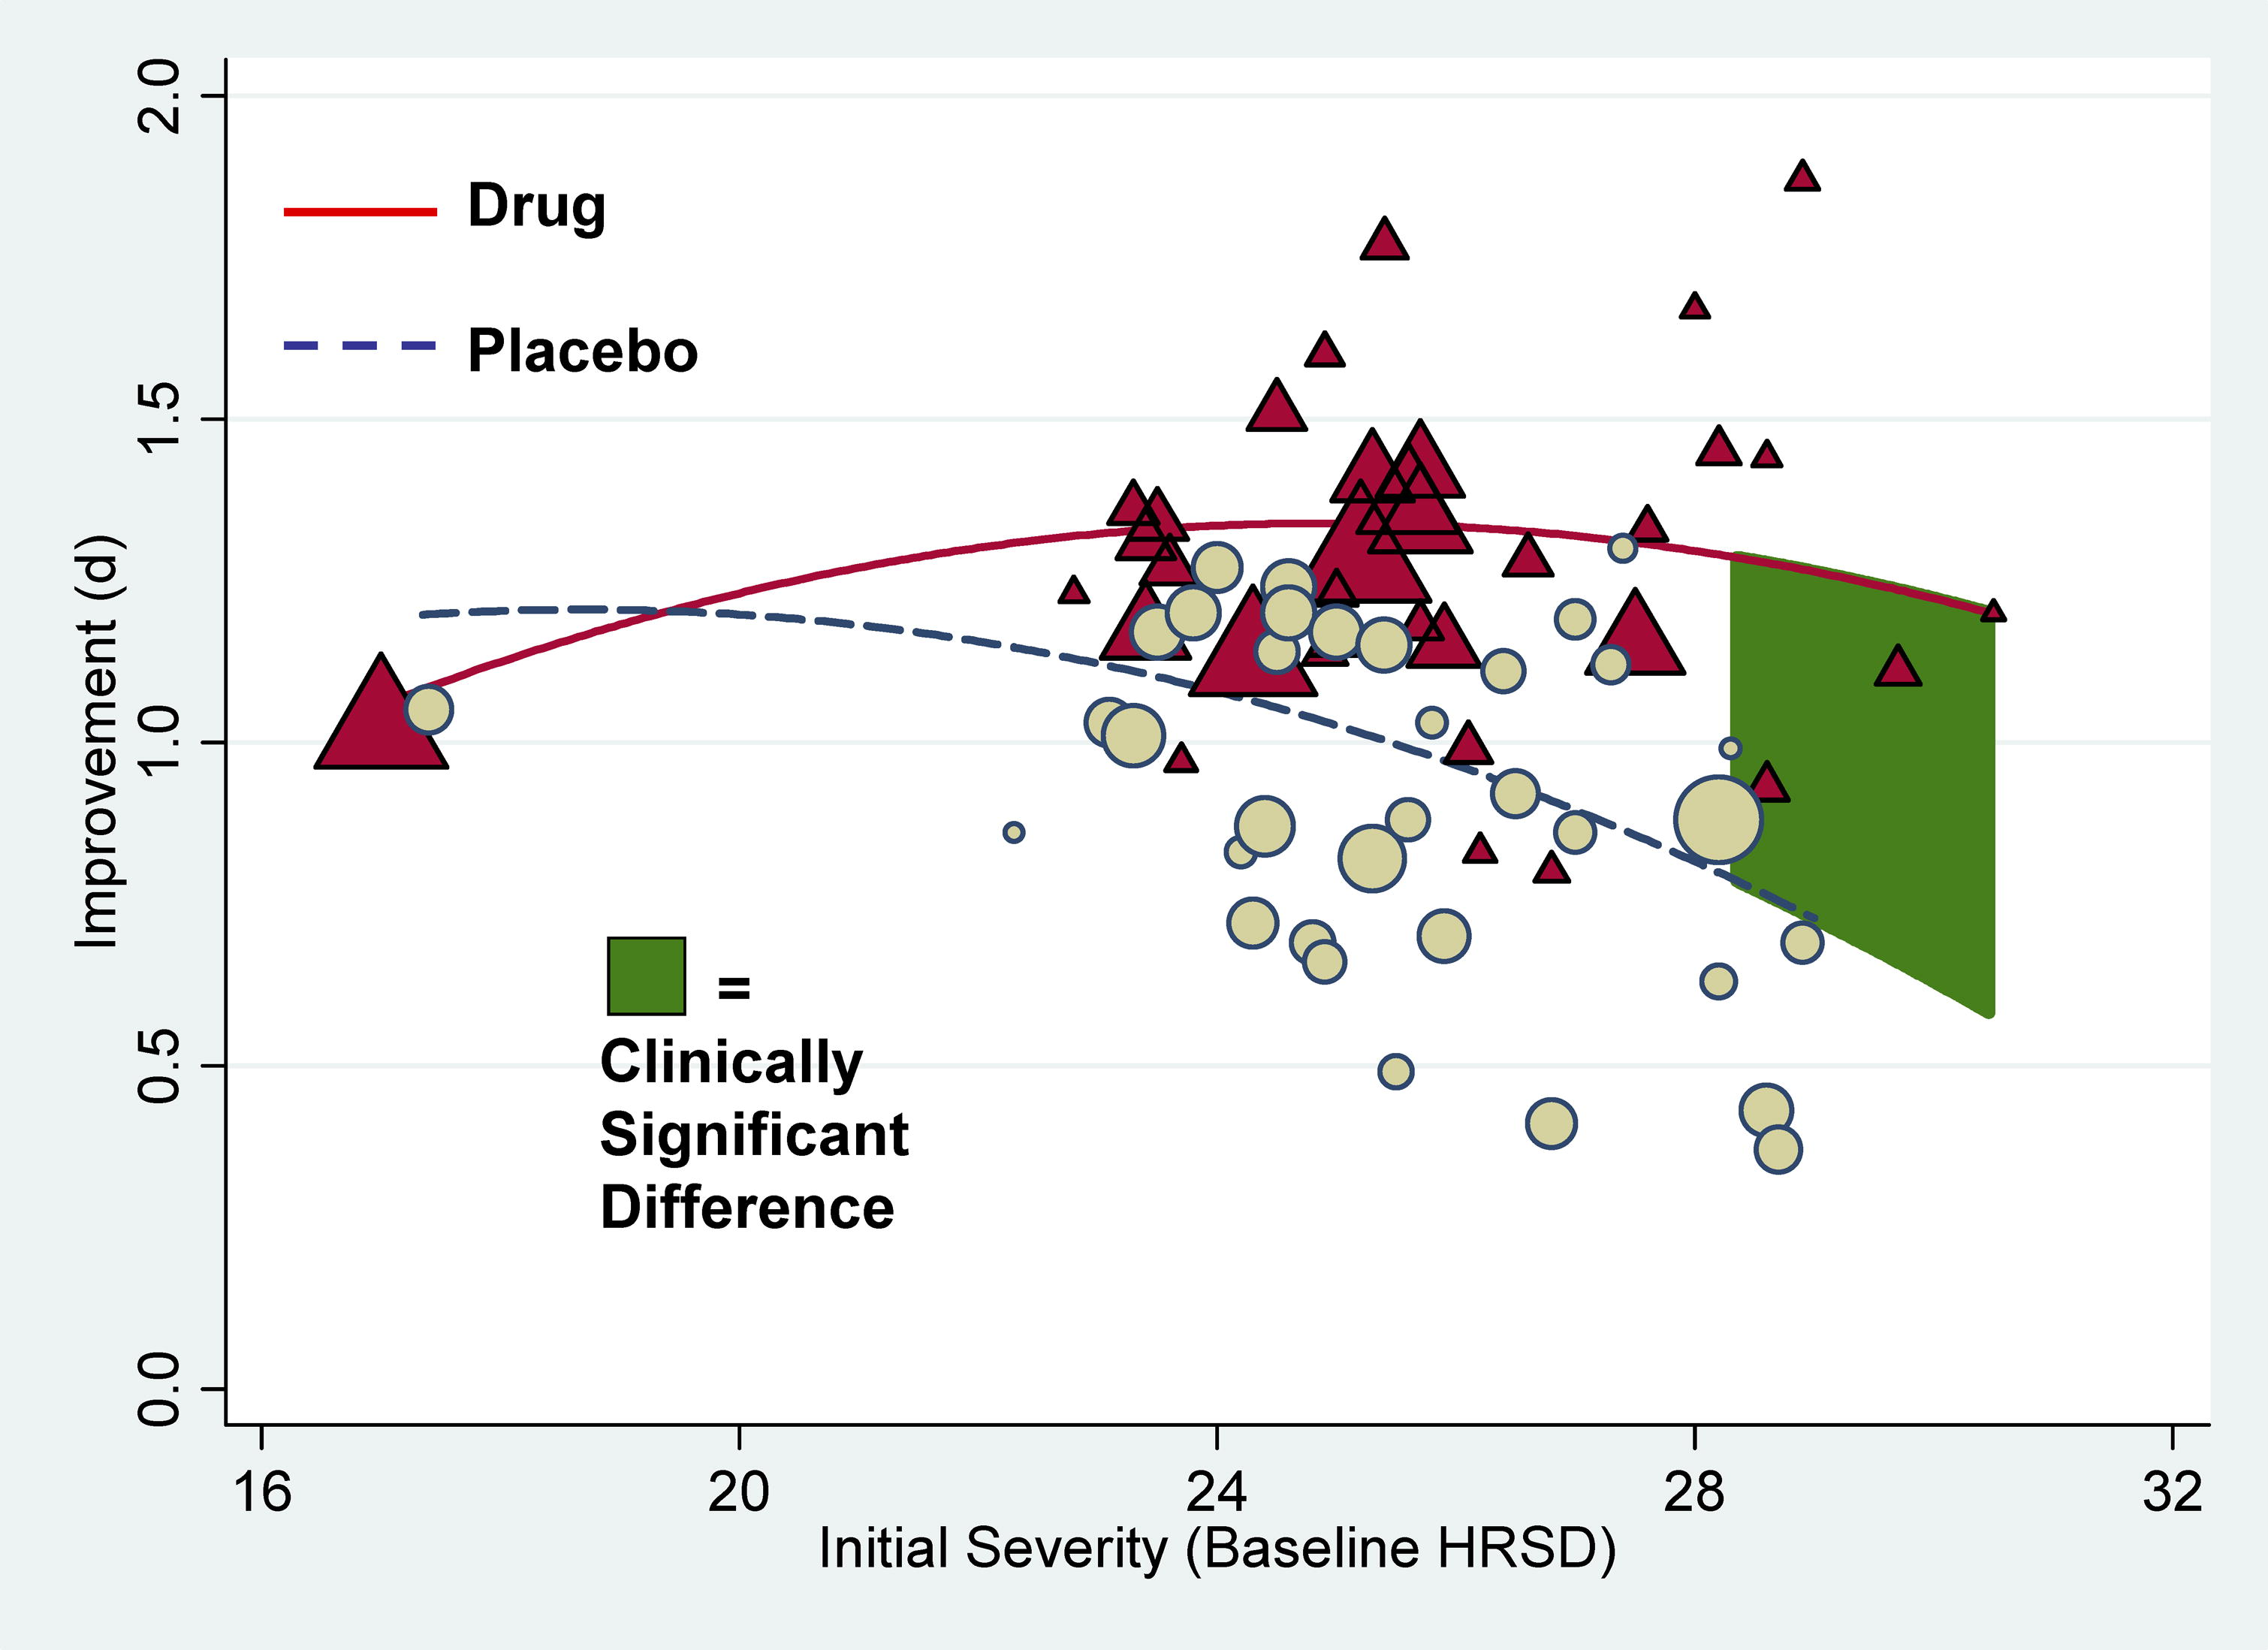 anti-depre-vs-placebo-chart.jpg